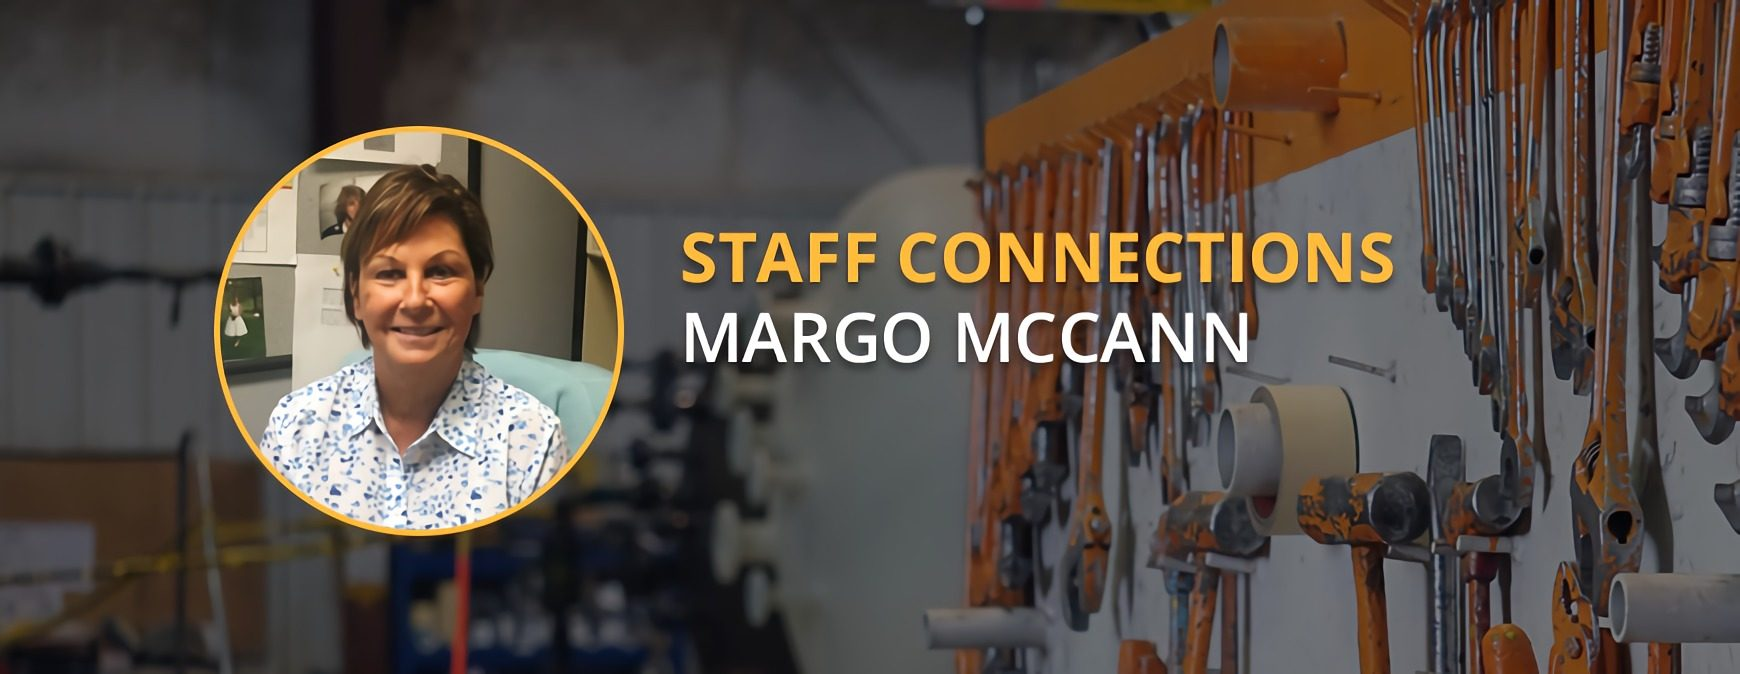 Margo Mcann staff connection